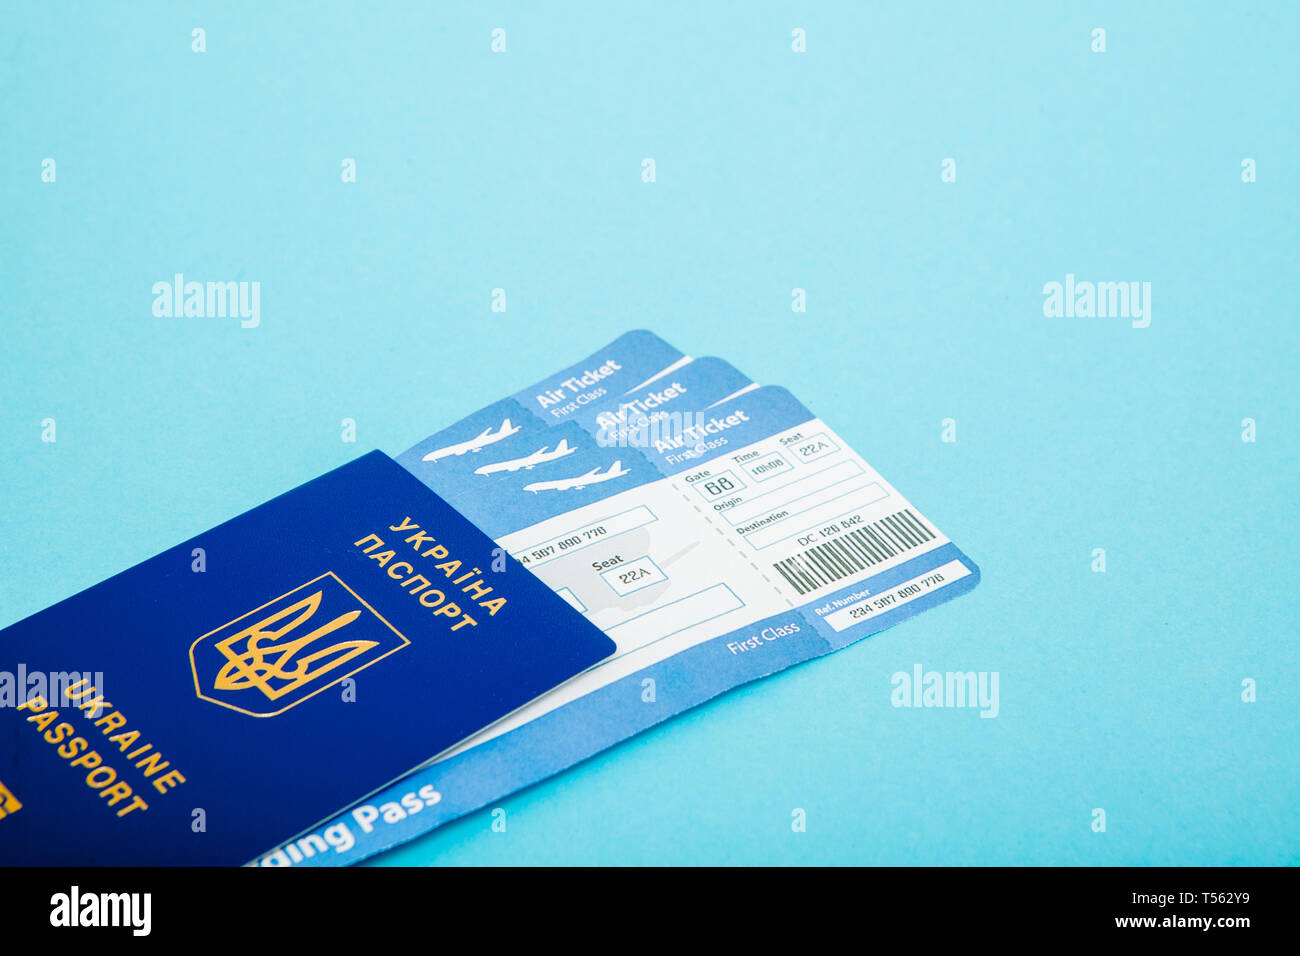 Air Tickets Stock Photos & Air Tickets Stock Images - Alamy